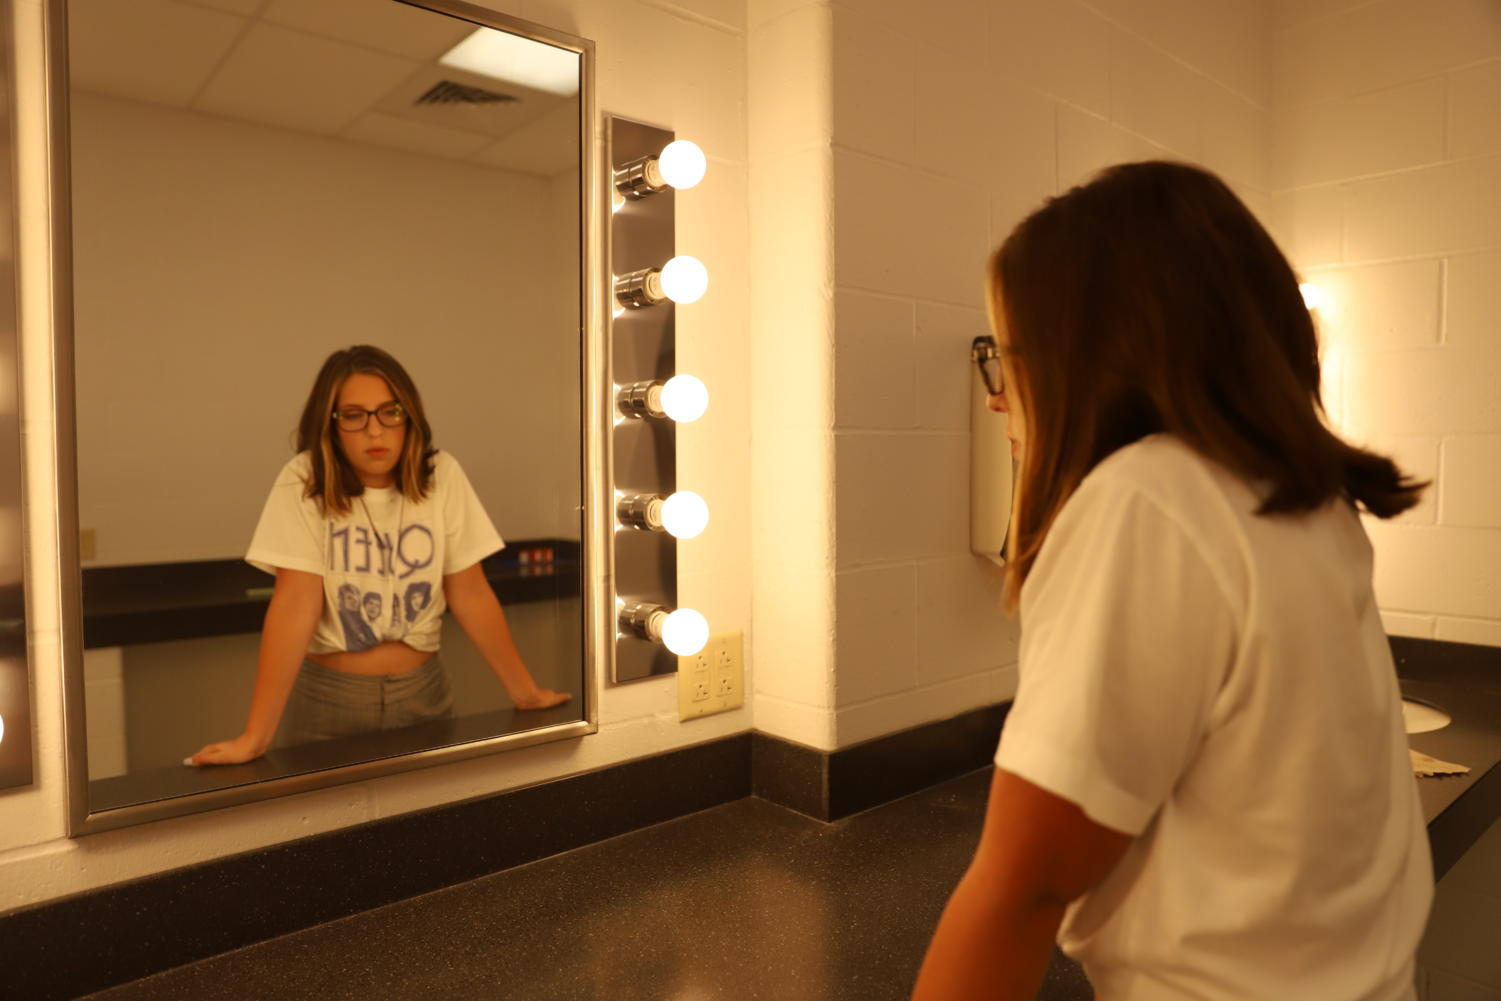 Since childhood, many teenagers have struggled to love what they see in the mirror.